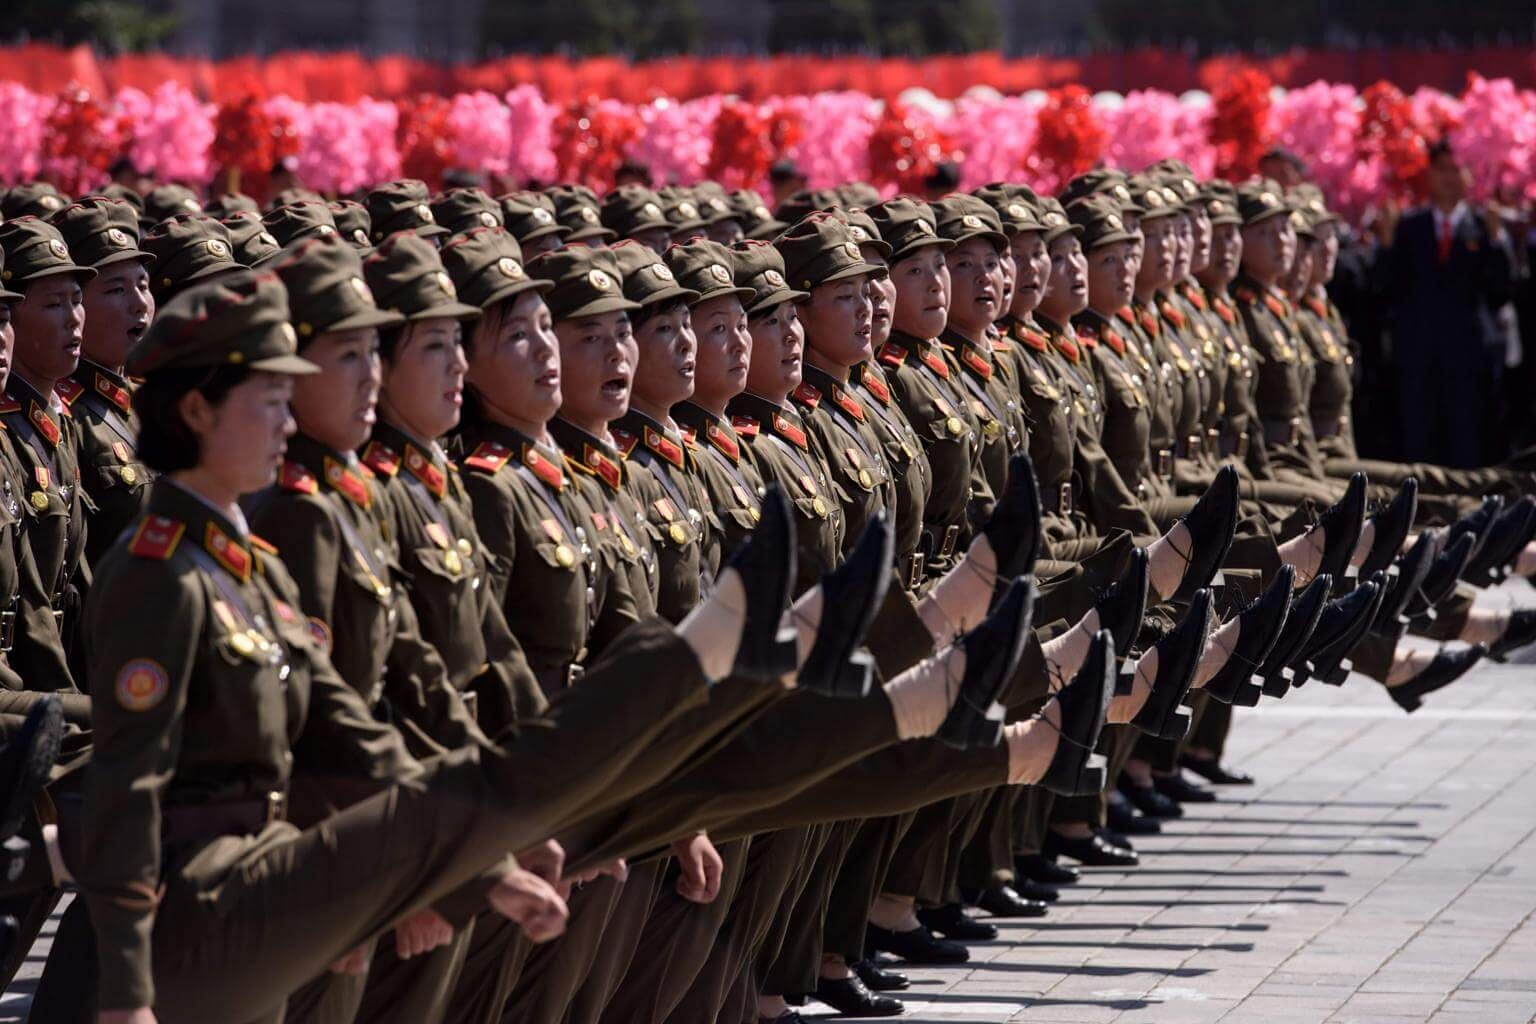 Parade in honor of the 70th anniversary of the Democratic People's Republic of Korea